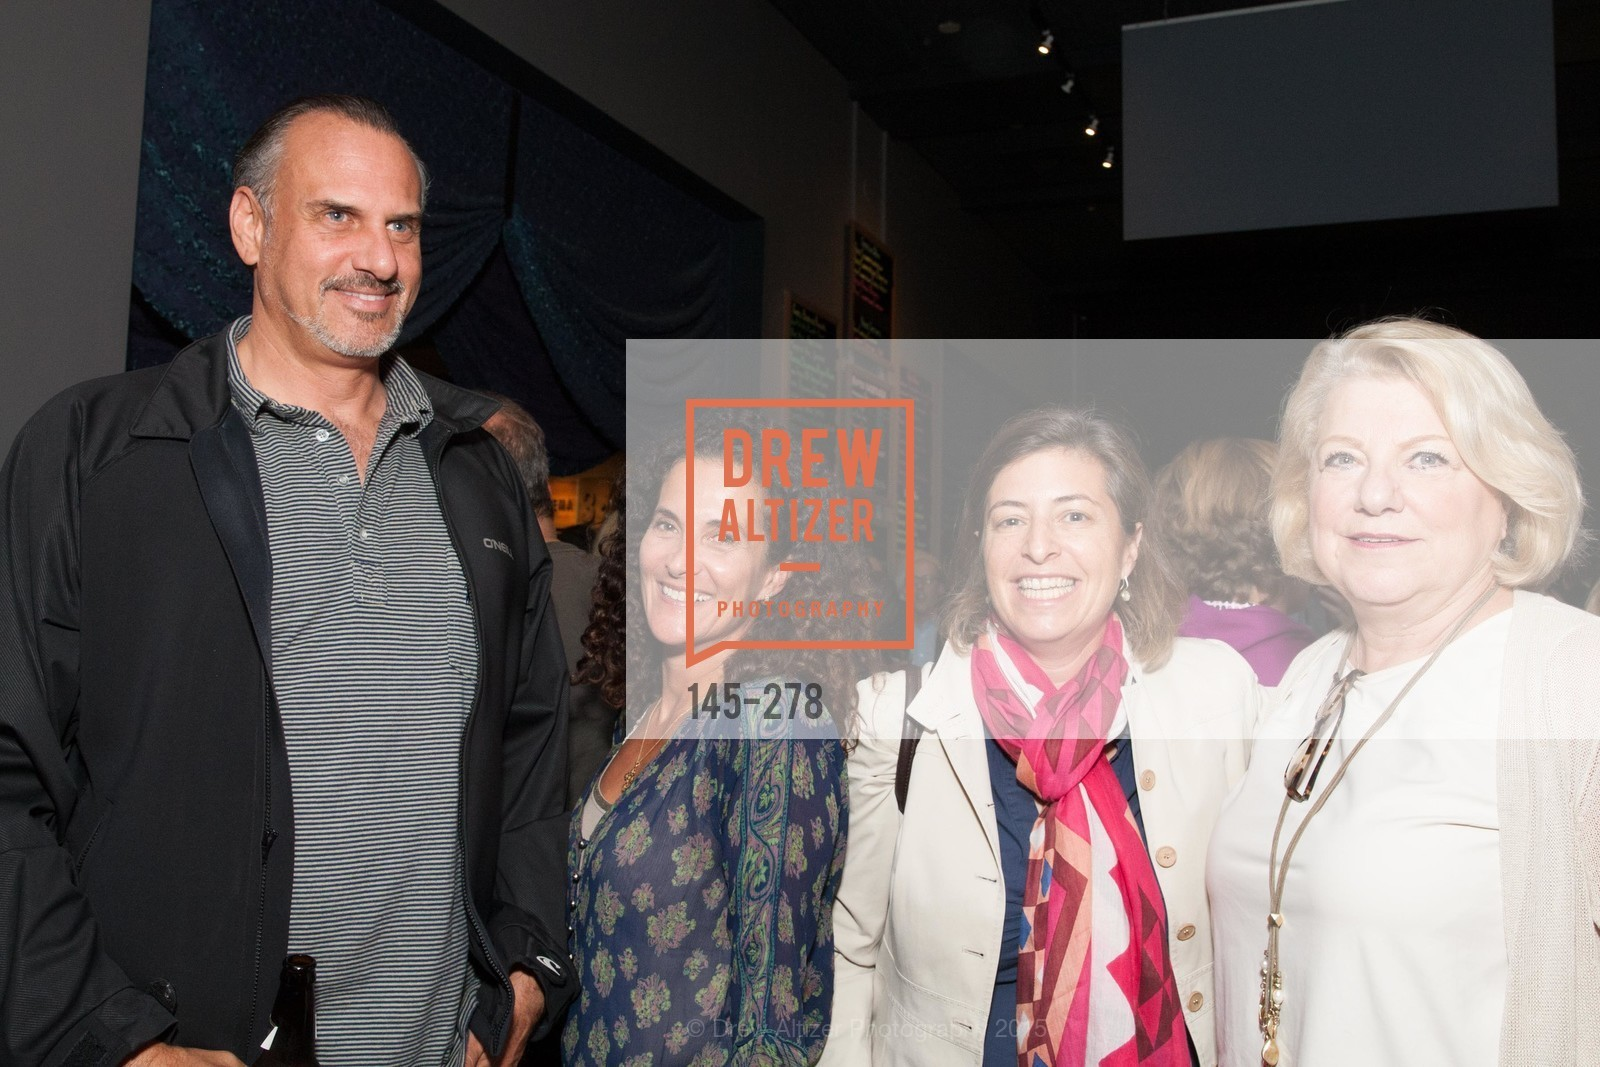 Alan Benello, Jan D'Alessandro, Julie Benello, Melanie Blum, San Francisco 2.0 Premiere, Sundance Kabuki Cinema, September 3rd, 2015,Drew Altizer, Drew Altizer Photography, full-service agency, private events, San Francisco photographer, photographer california